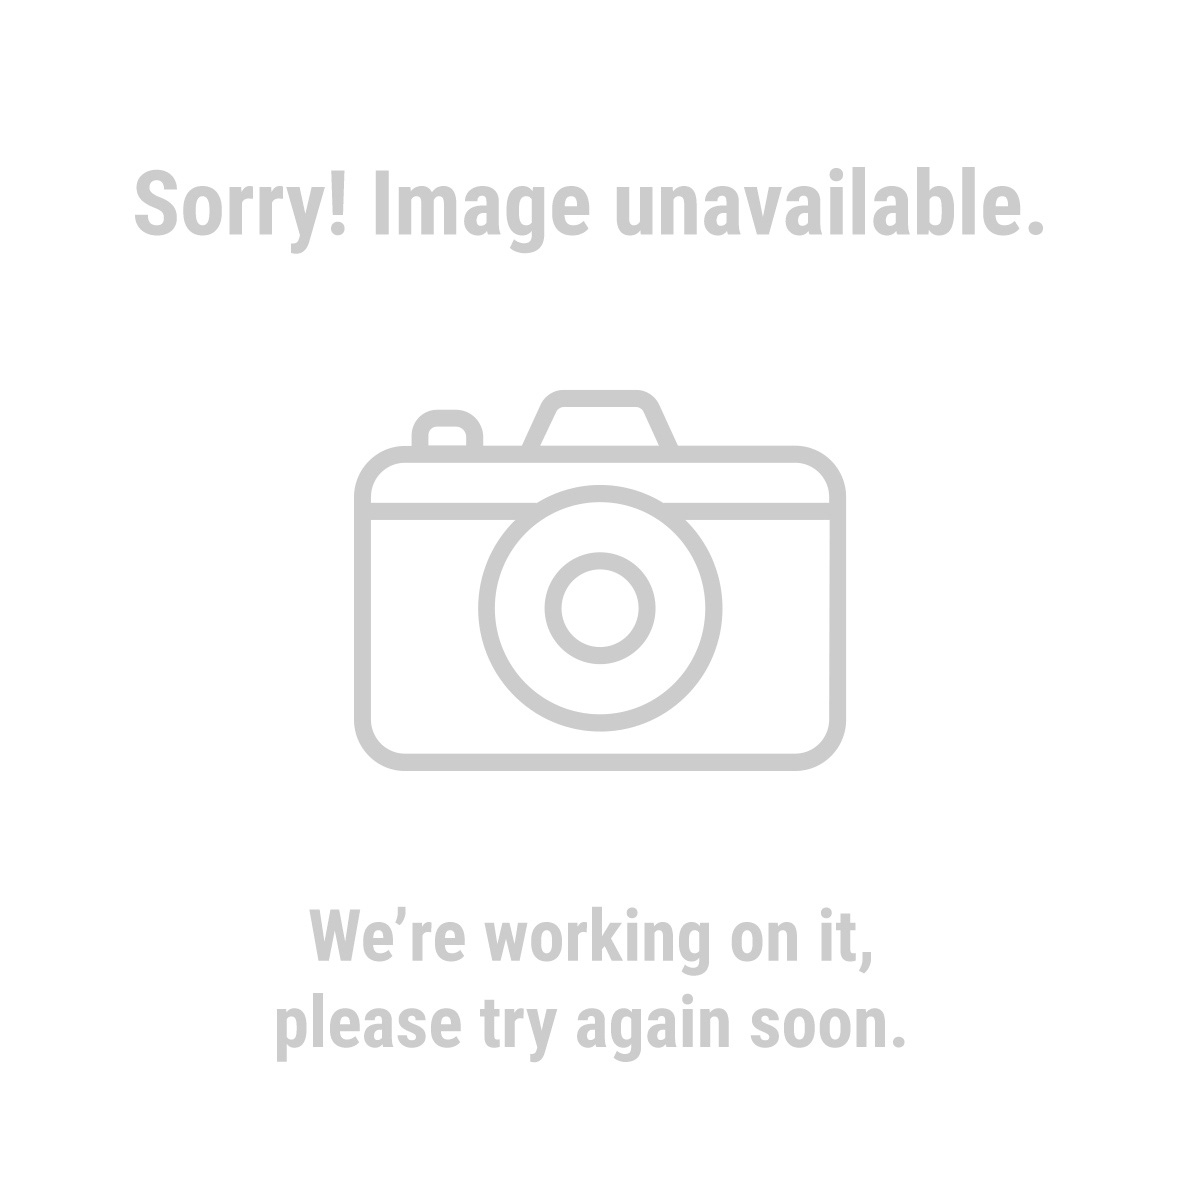 40 Ton Shop Press Parts http://www.harborfreight.com/20-ton-shop-press-32879.html